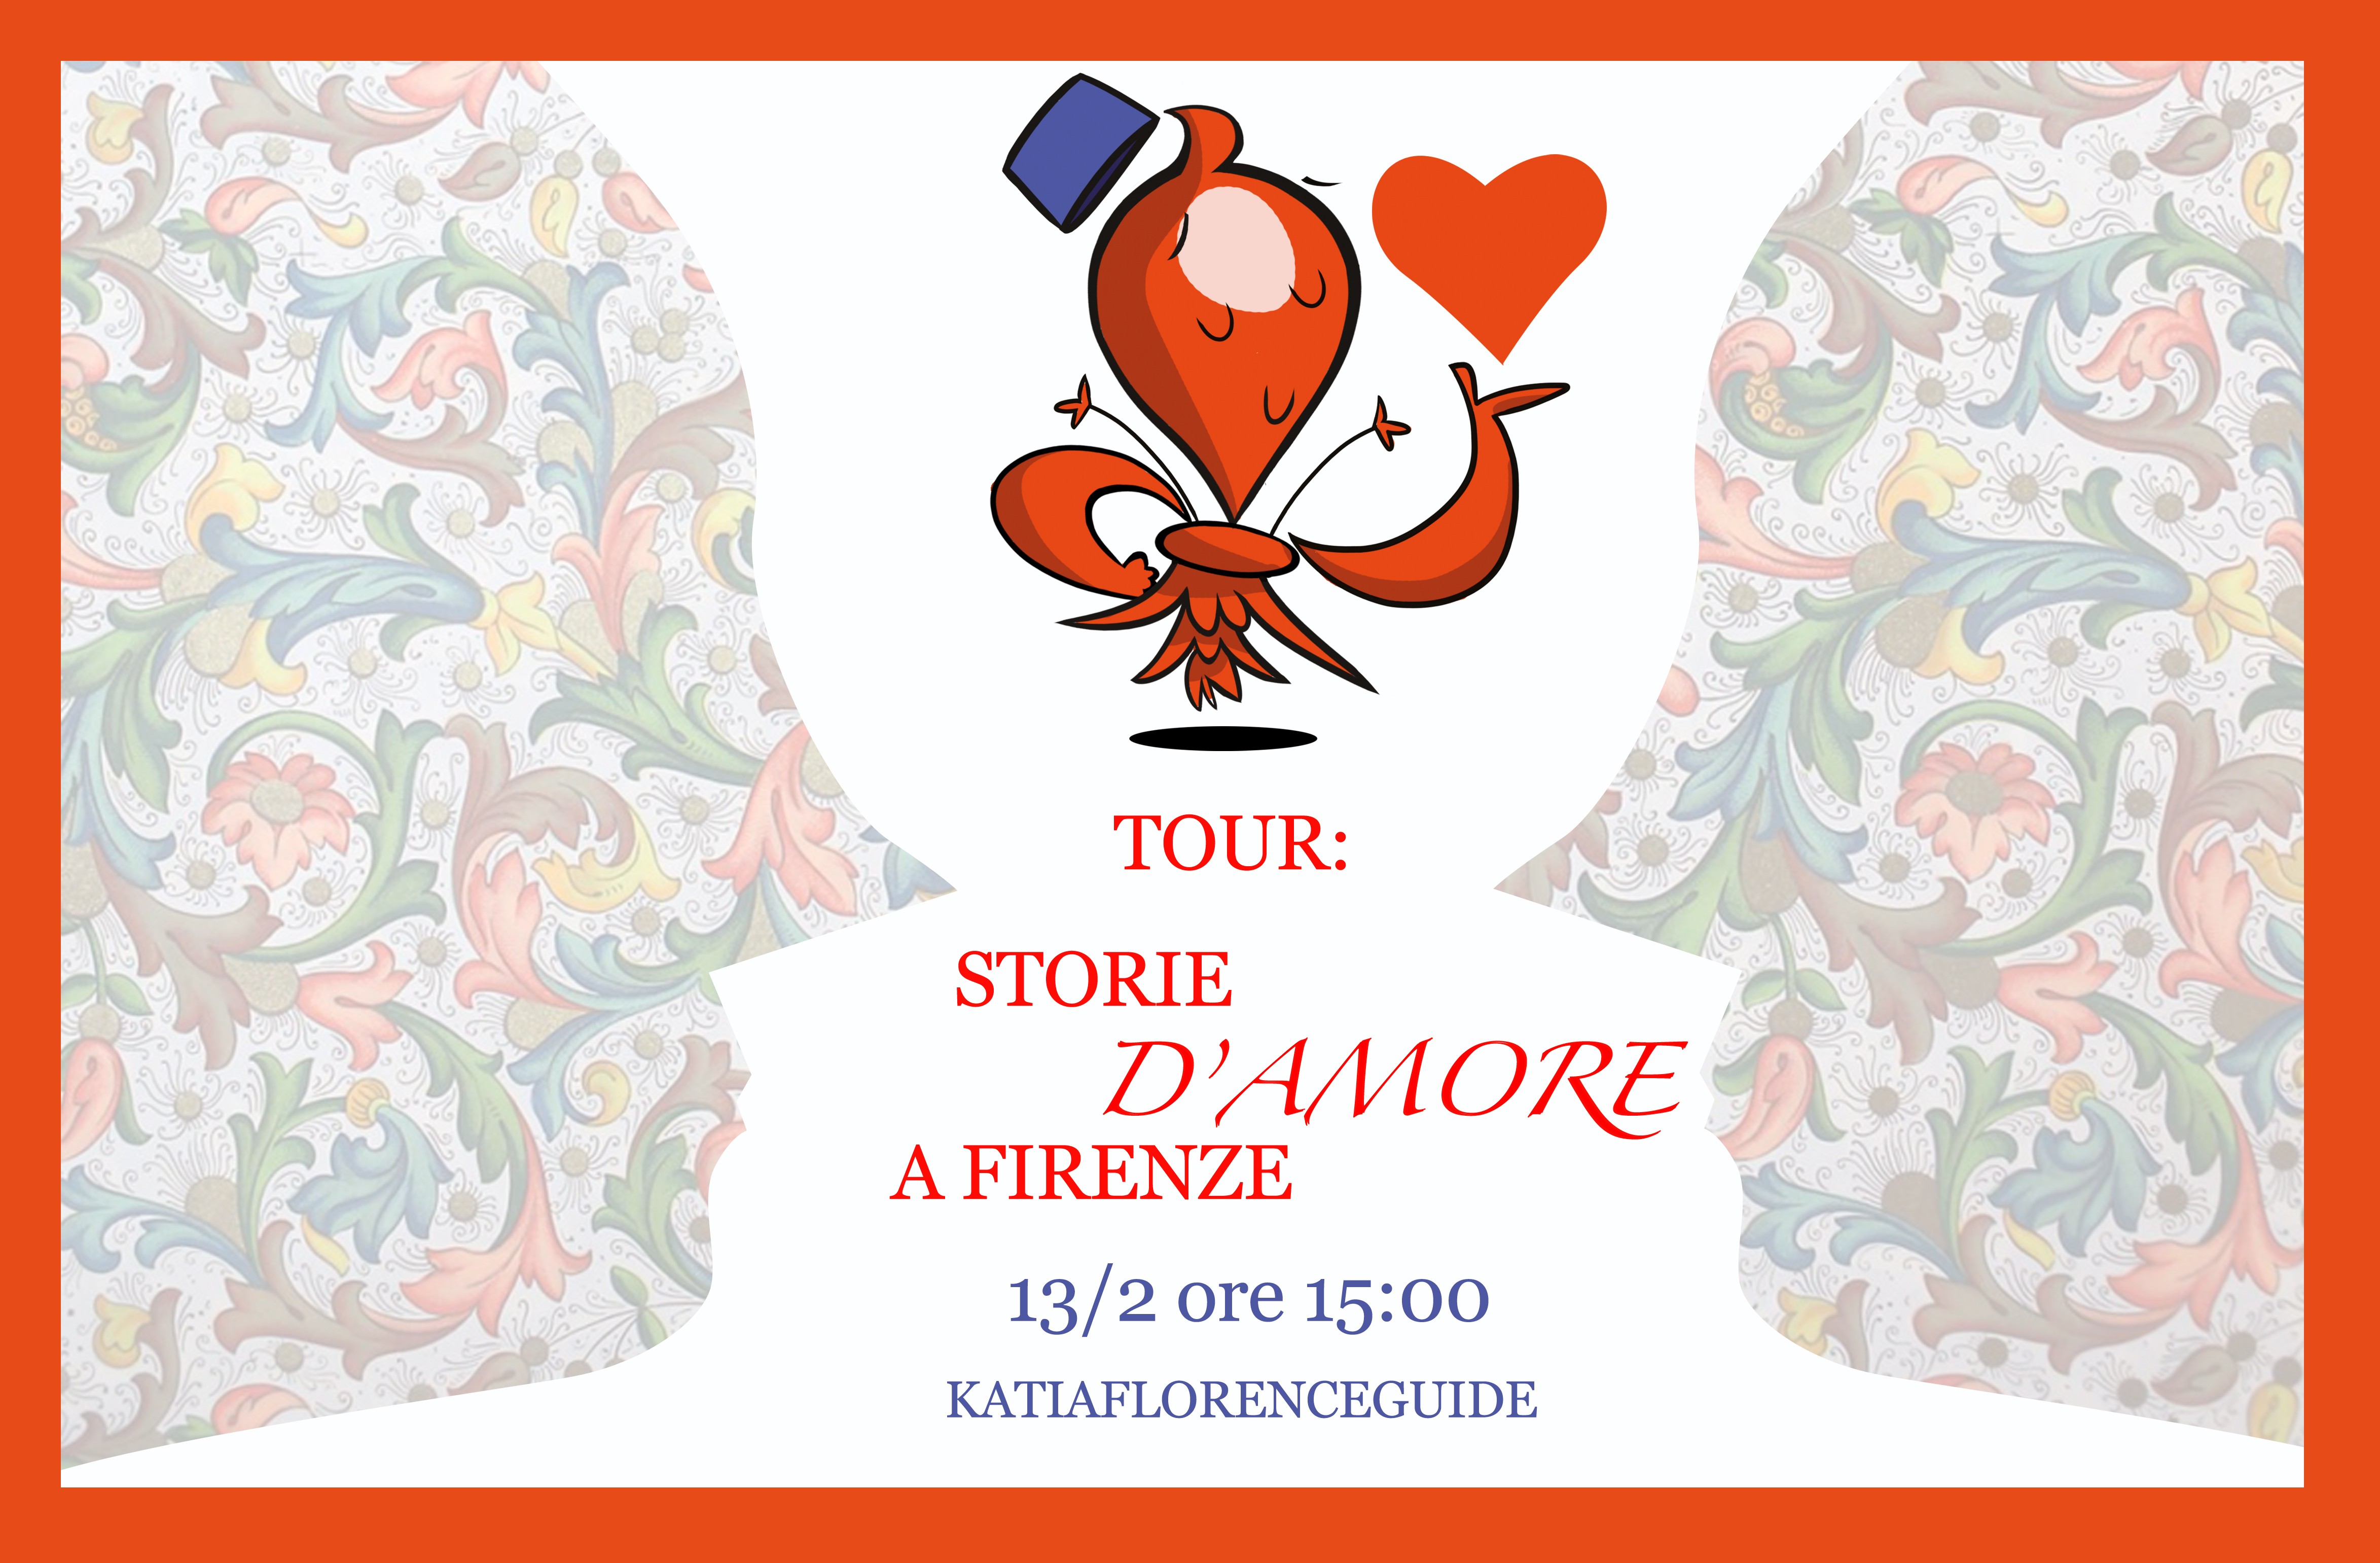 Tour Storie d'amore a Firenze - katiaflorenceguide - San Valentino